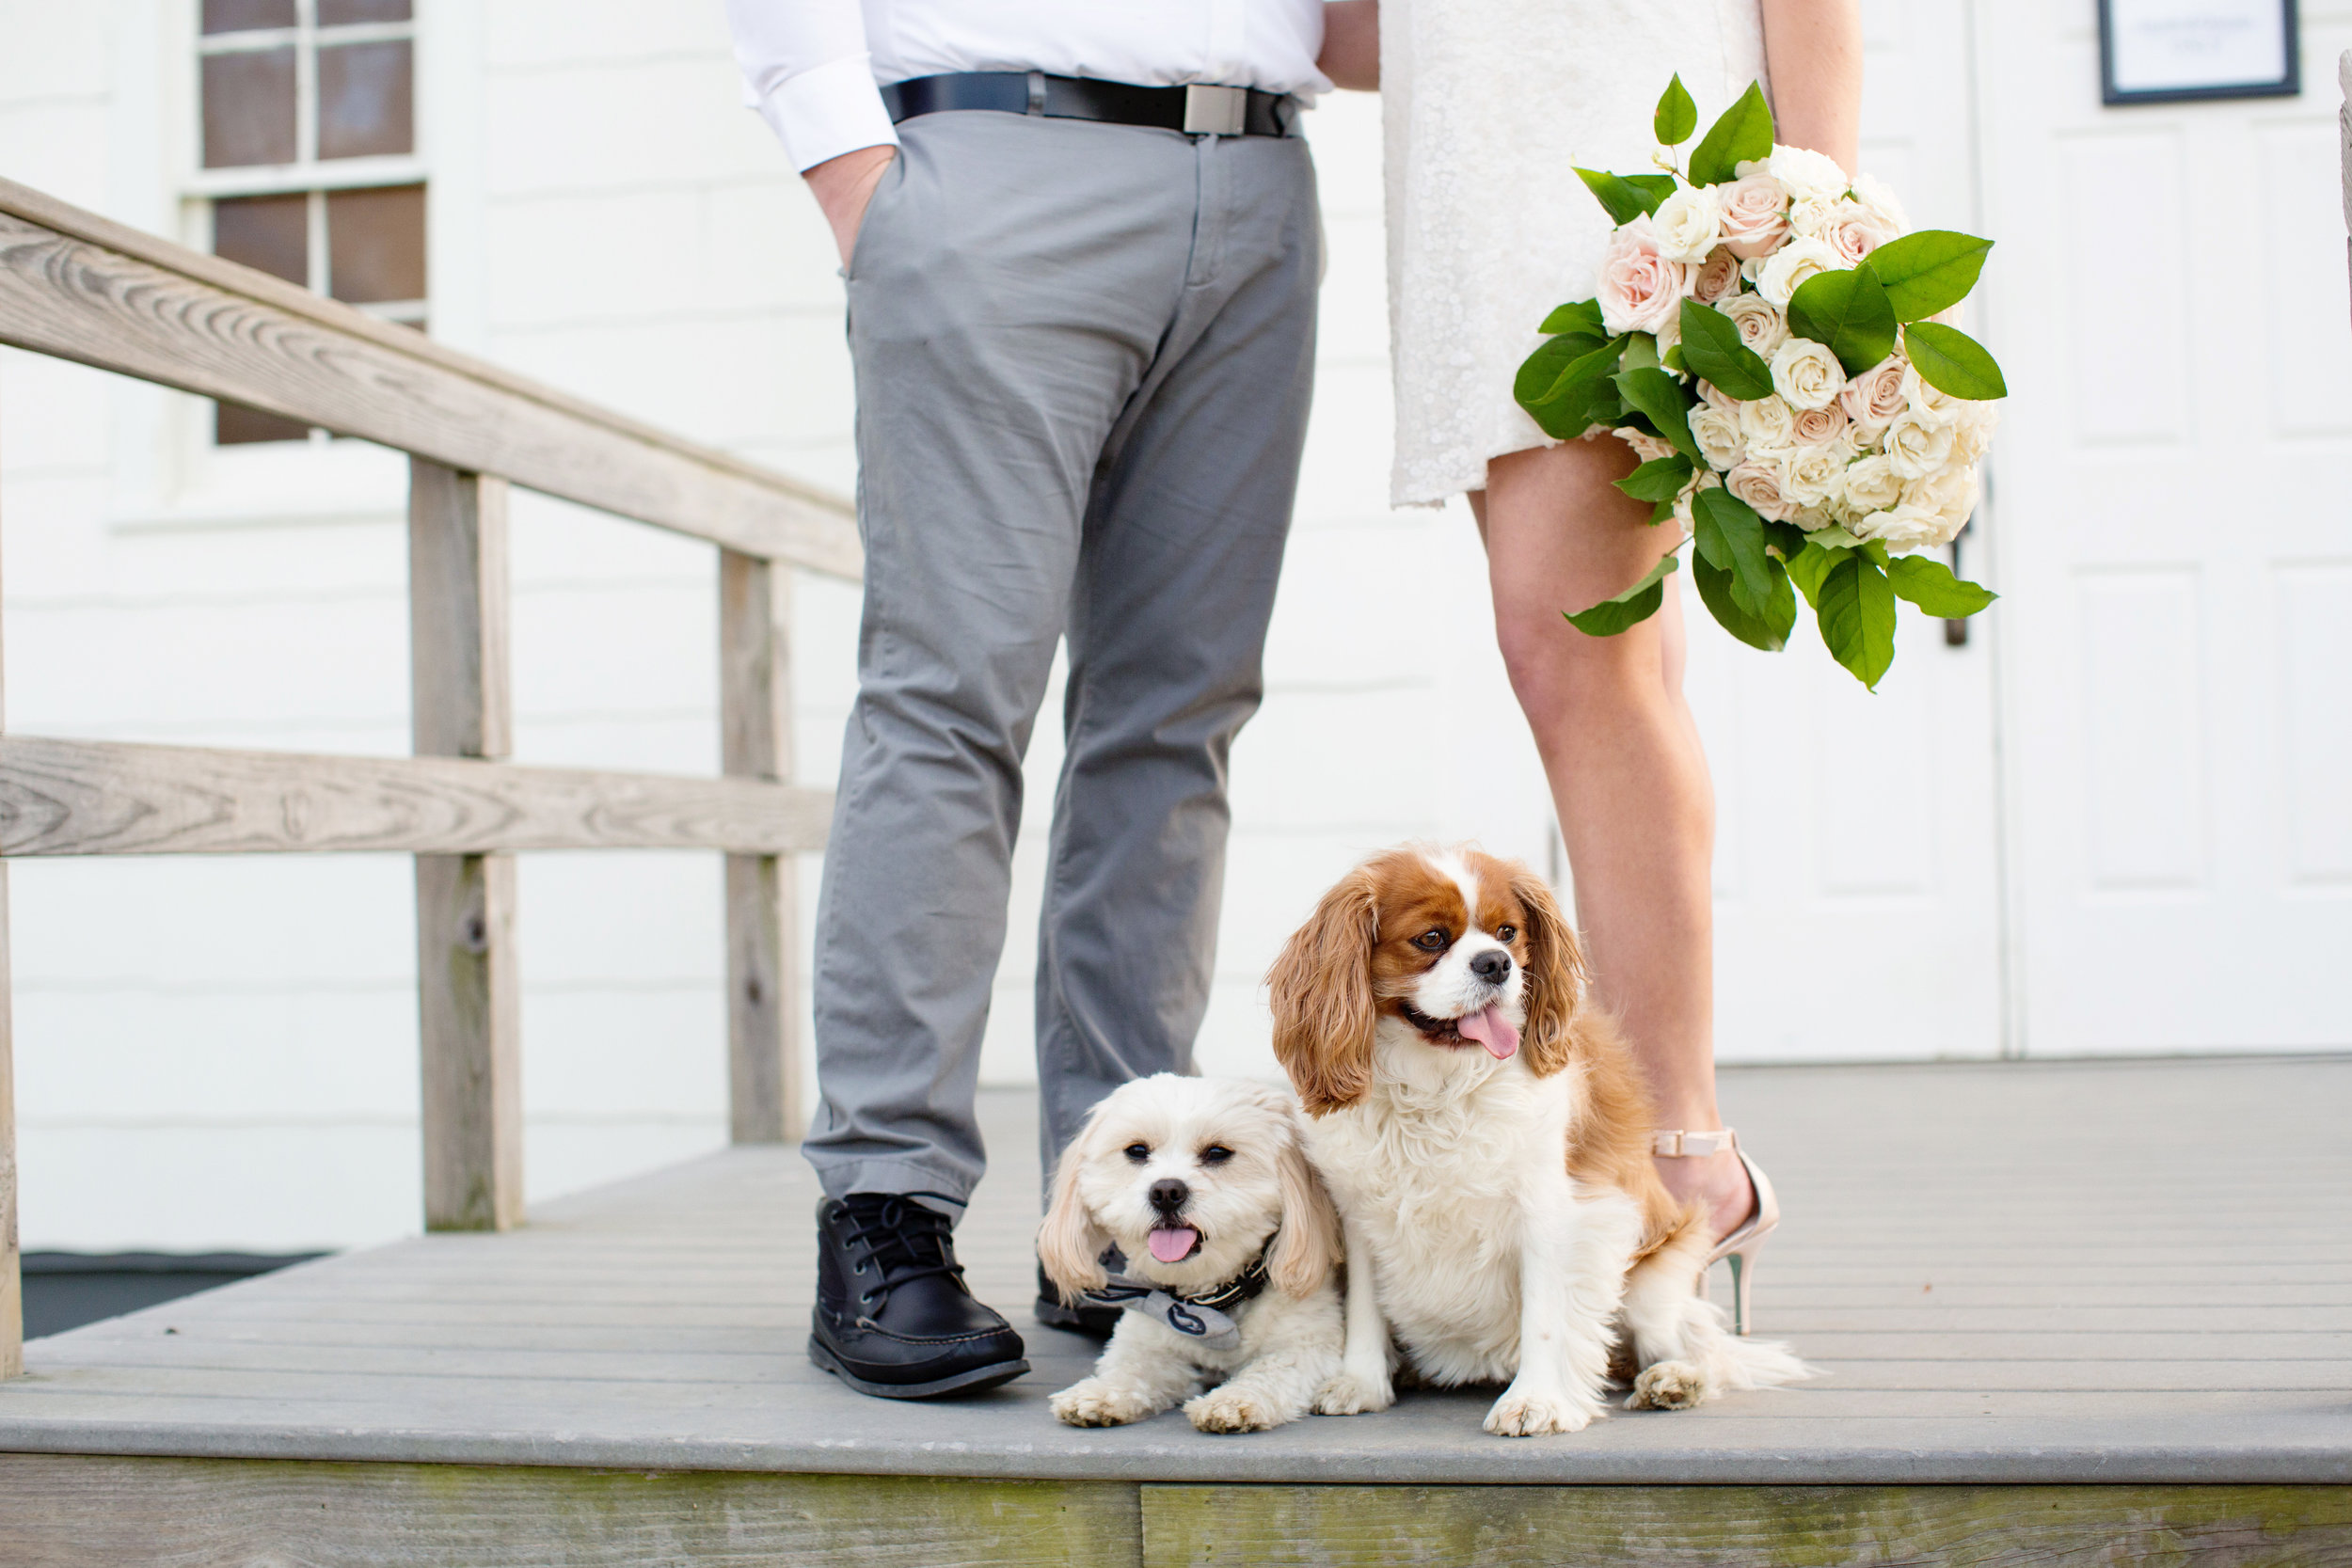 dogs at beach engagement shoot at feet of couple while bride to be holds blush and ivory rose bouquet wearing bcbg white sequin dress